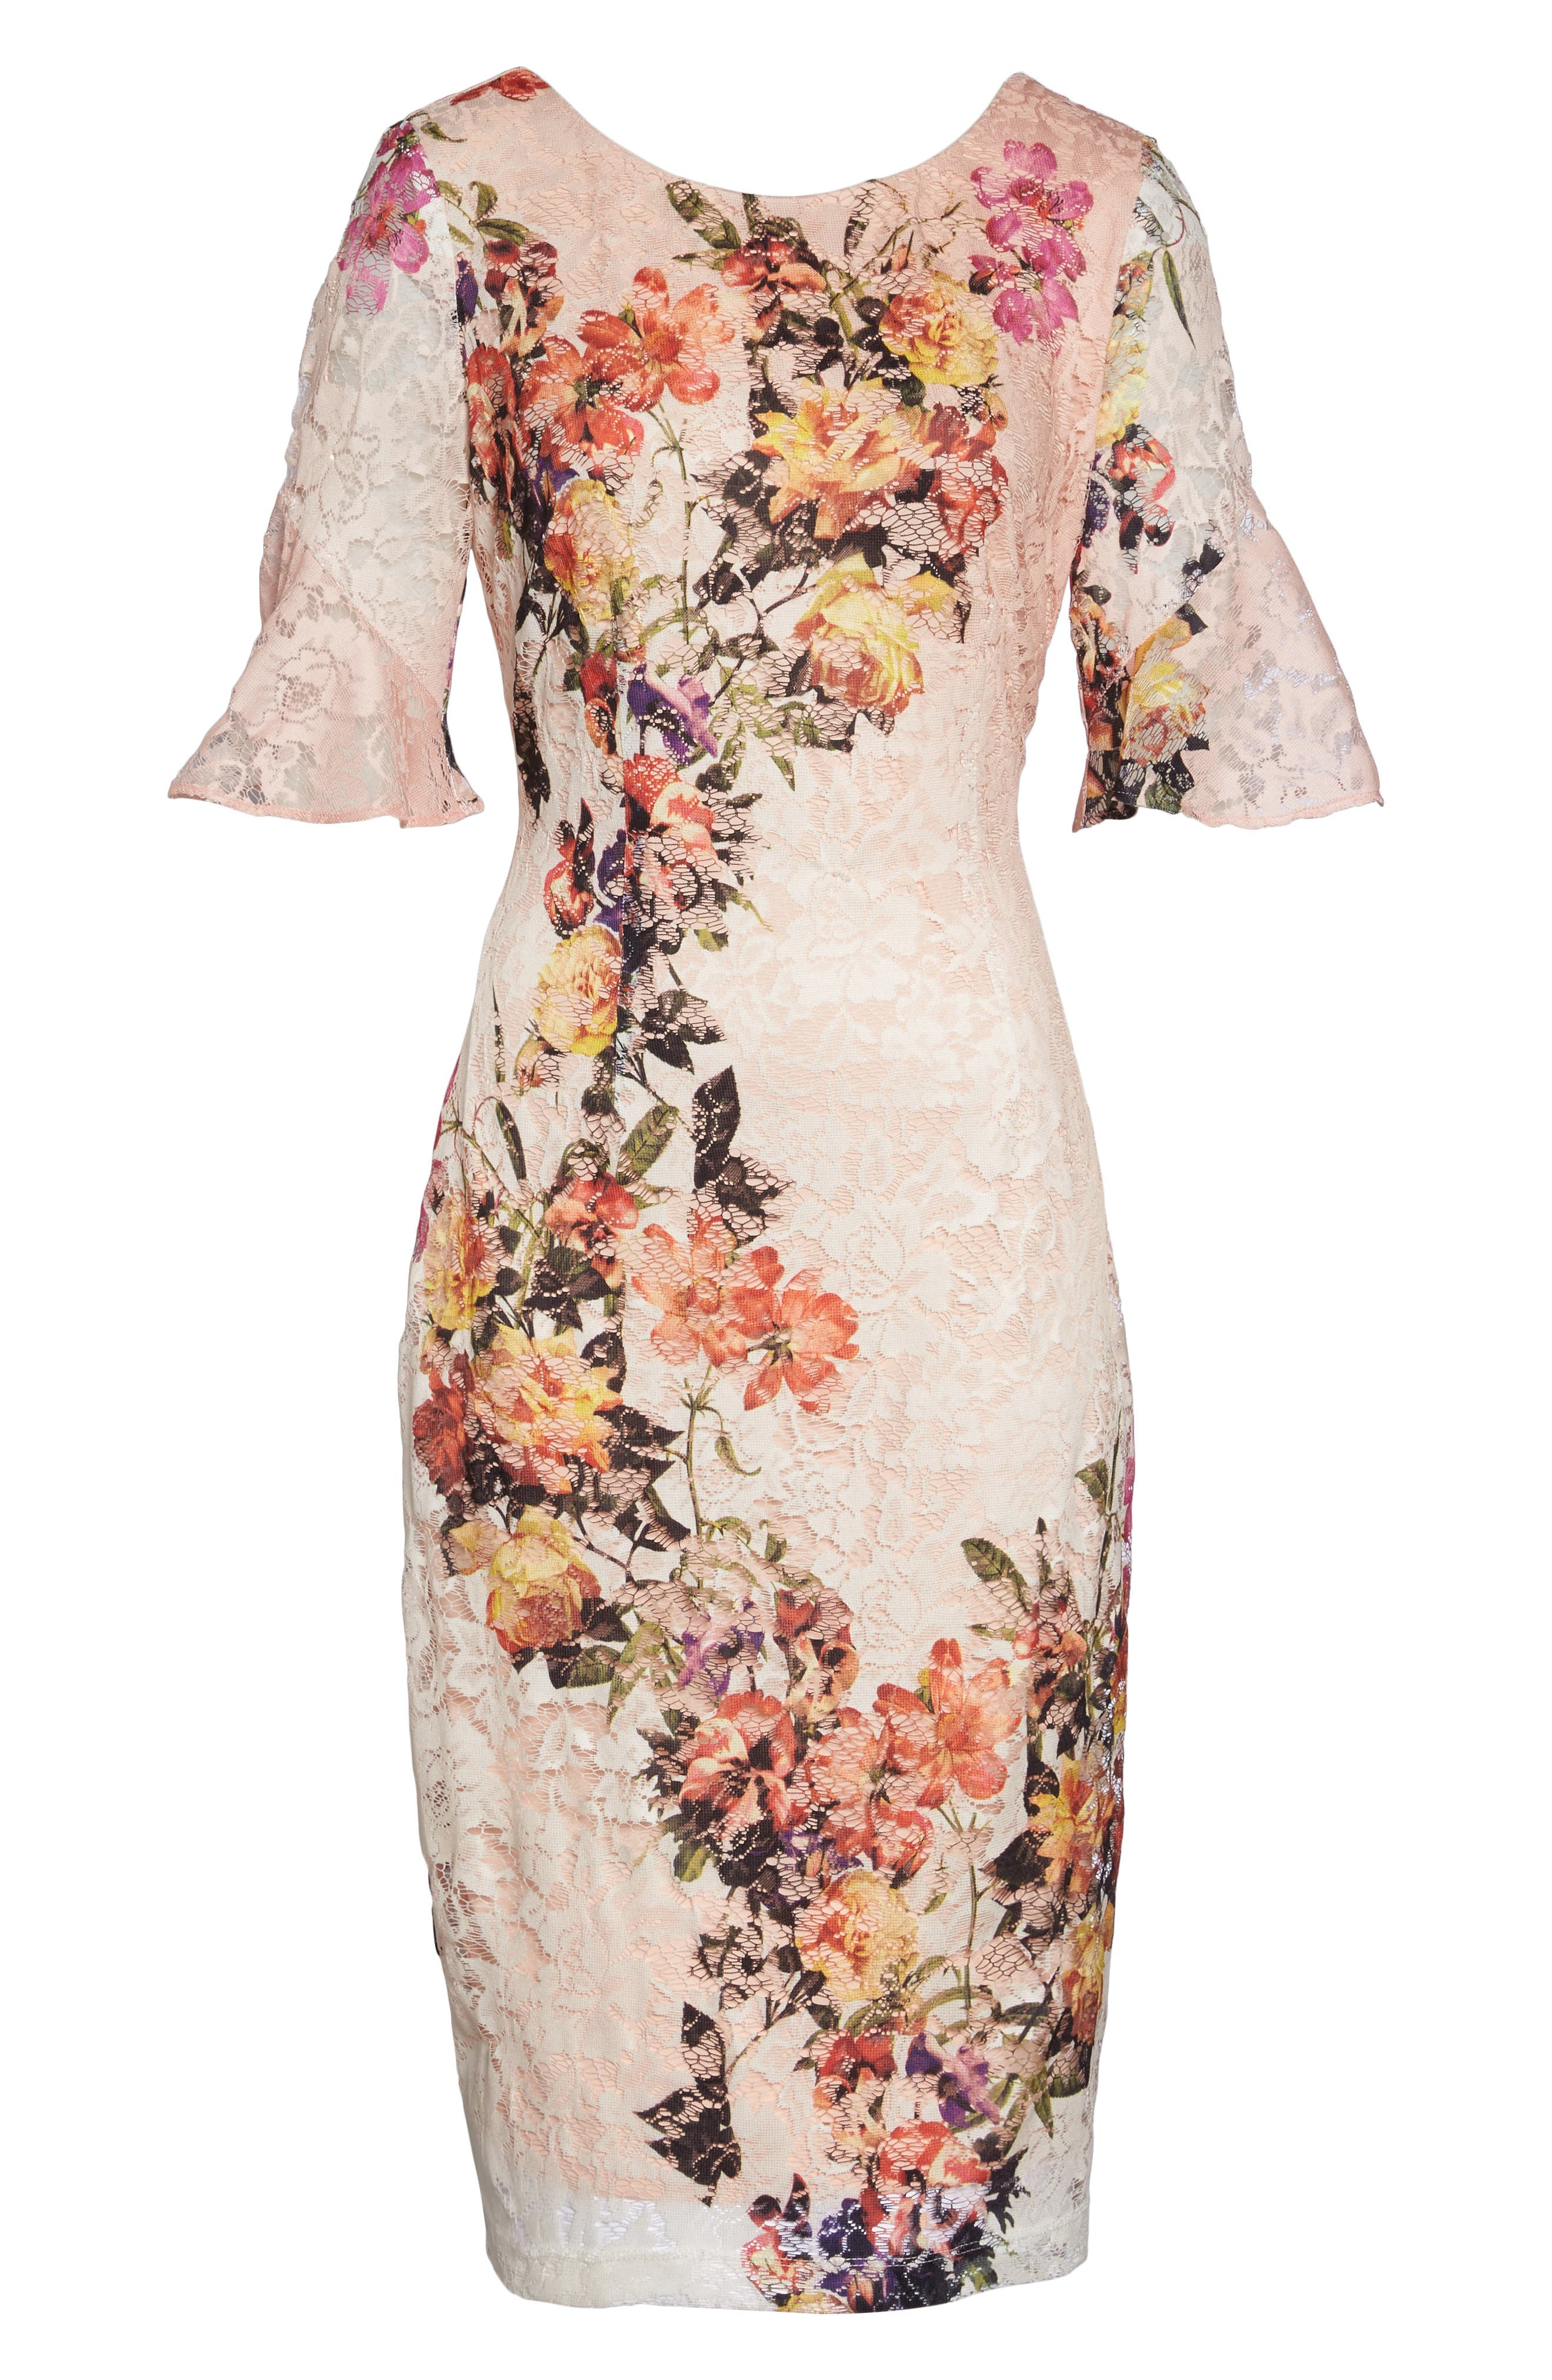 Print Lace Sheath Dress,                             Alternate thumbnail 6, color,                             950